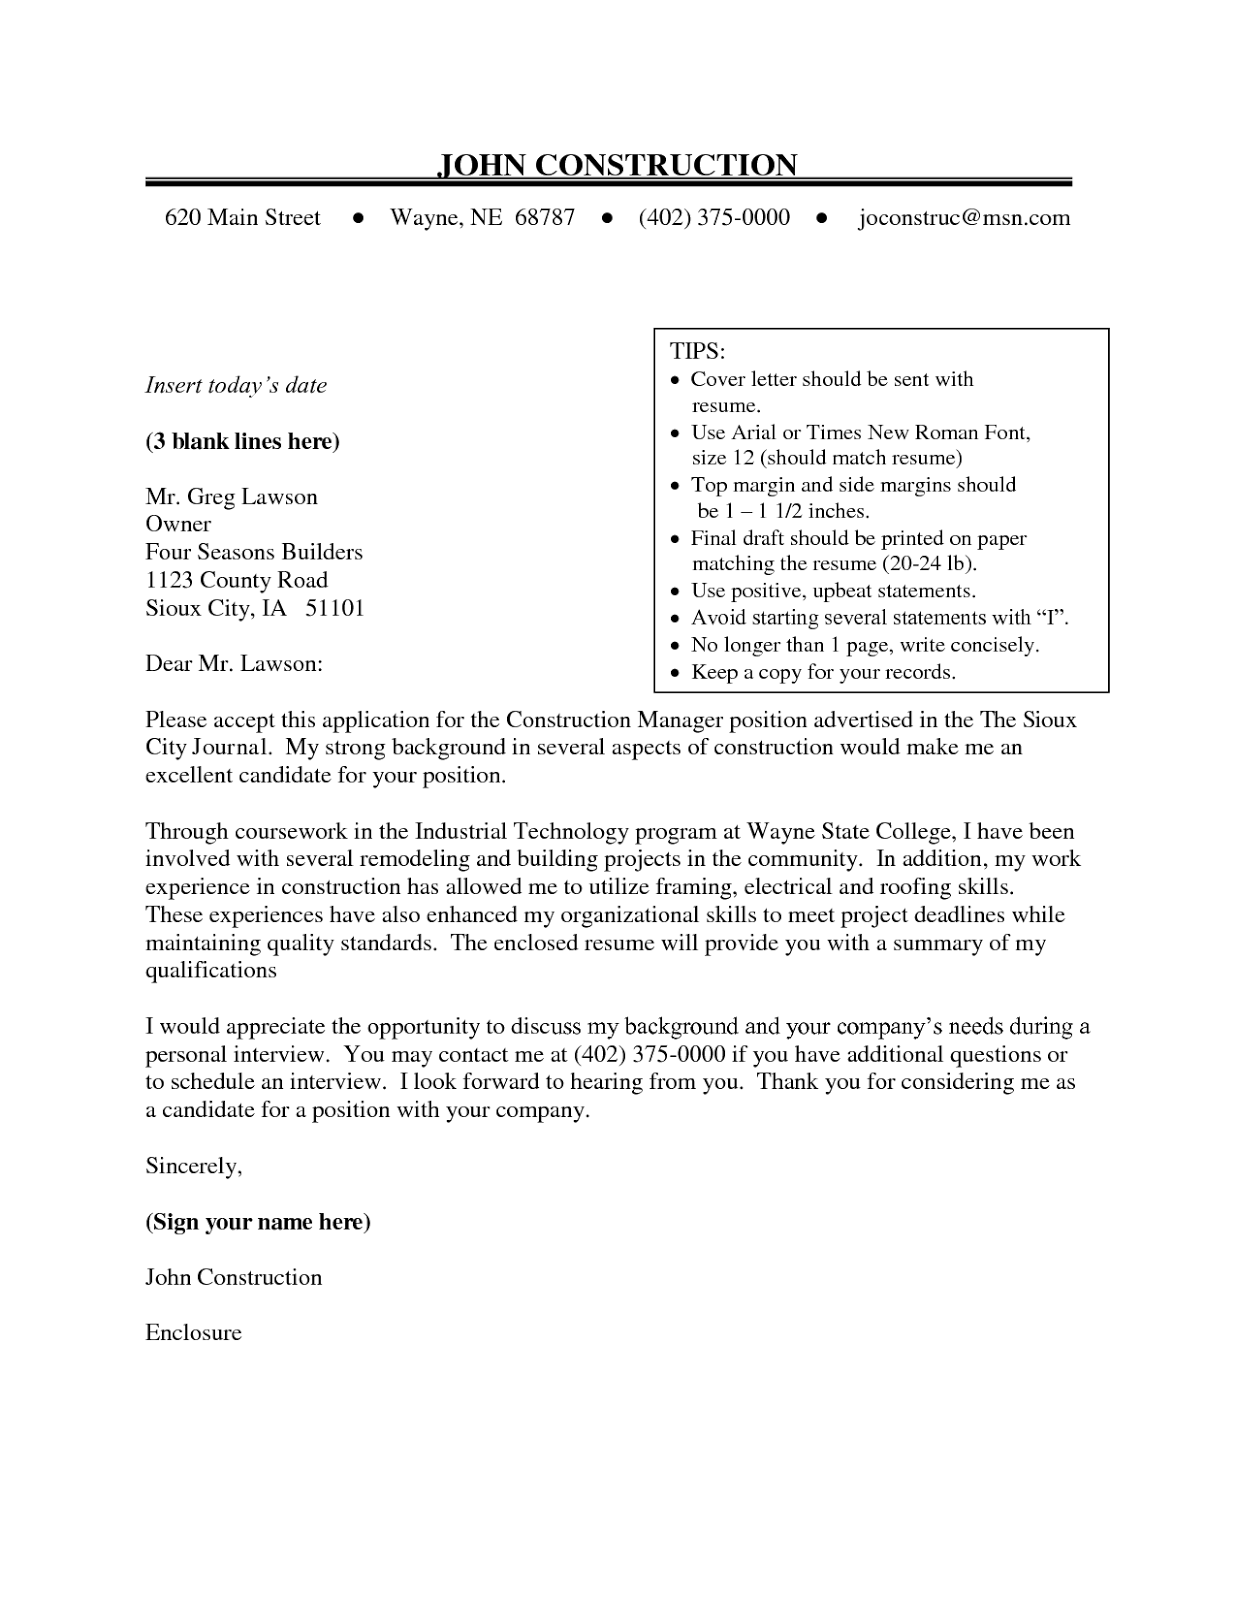 Resume Cover Letter Example Template   Cover Letter Cv   Resume     Resume uk format